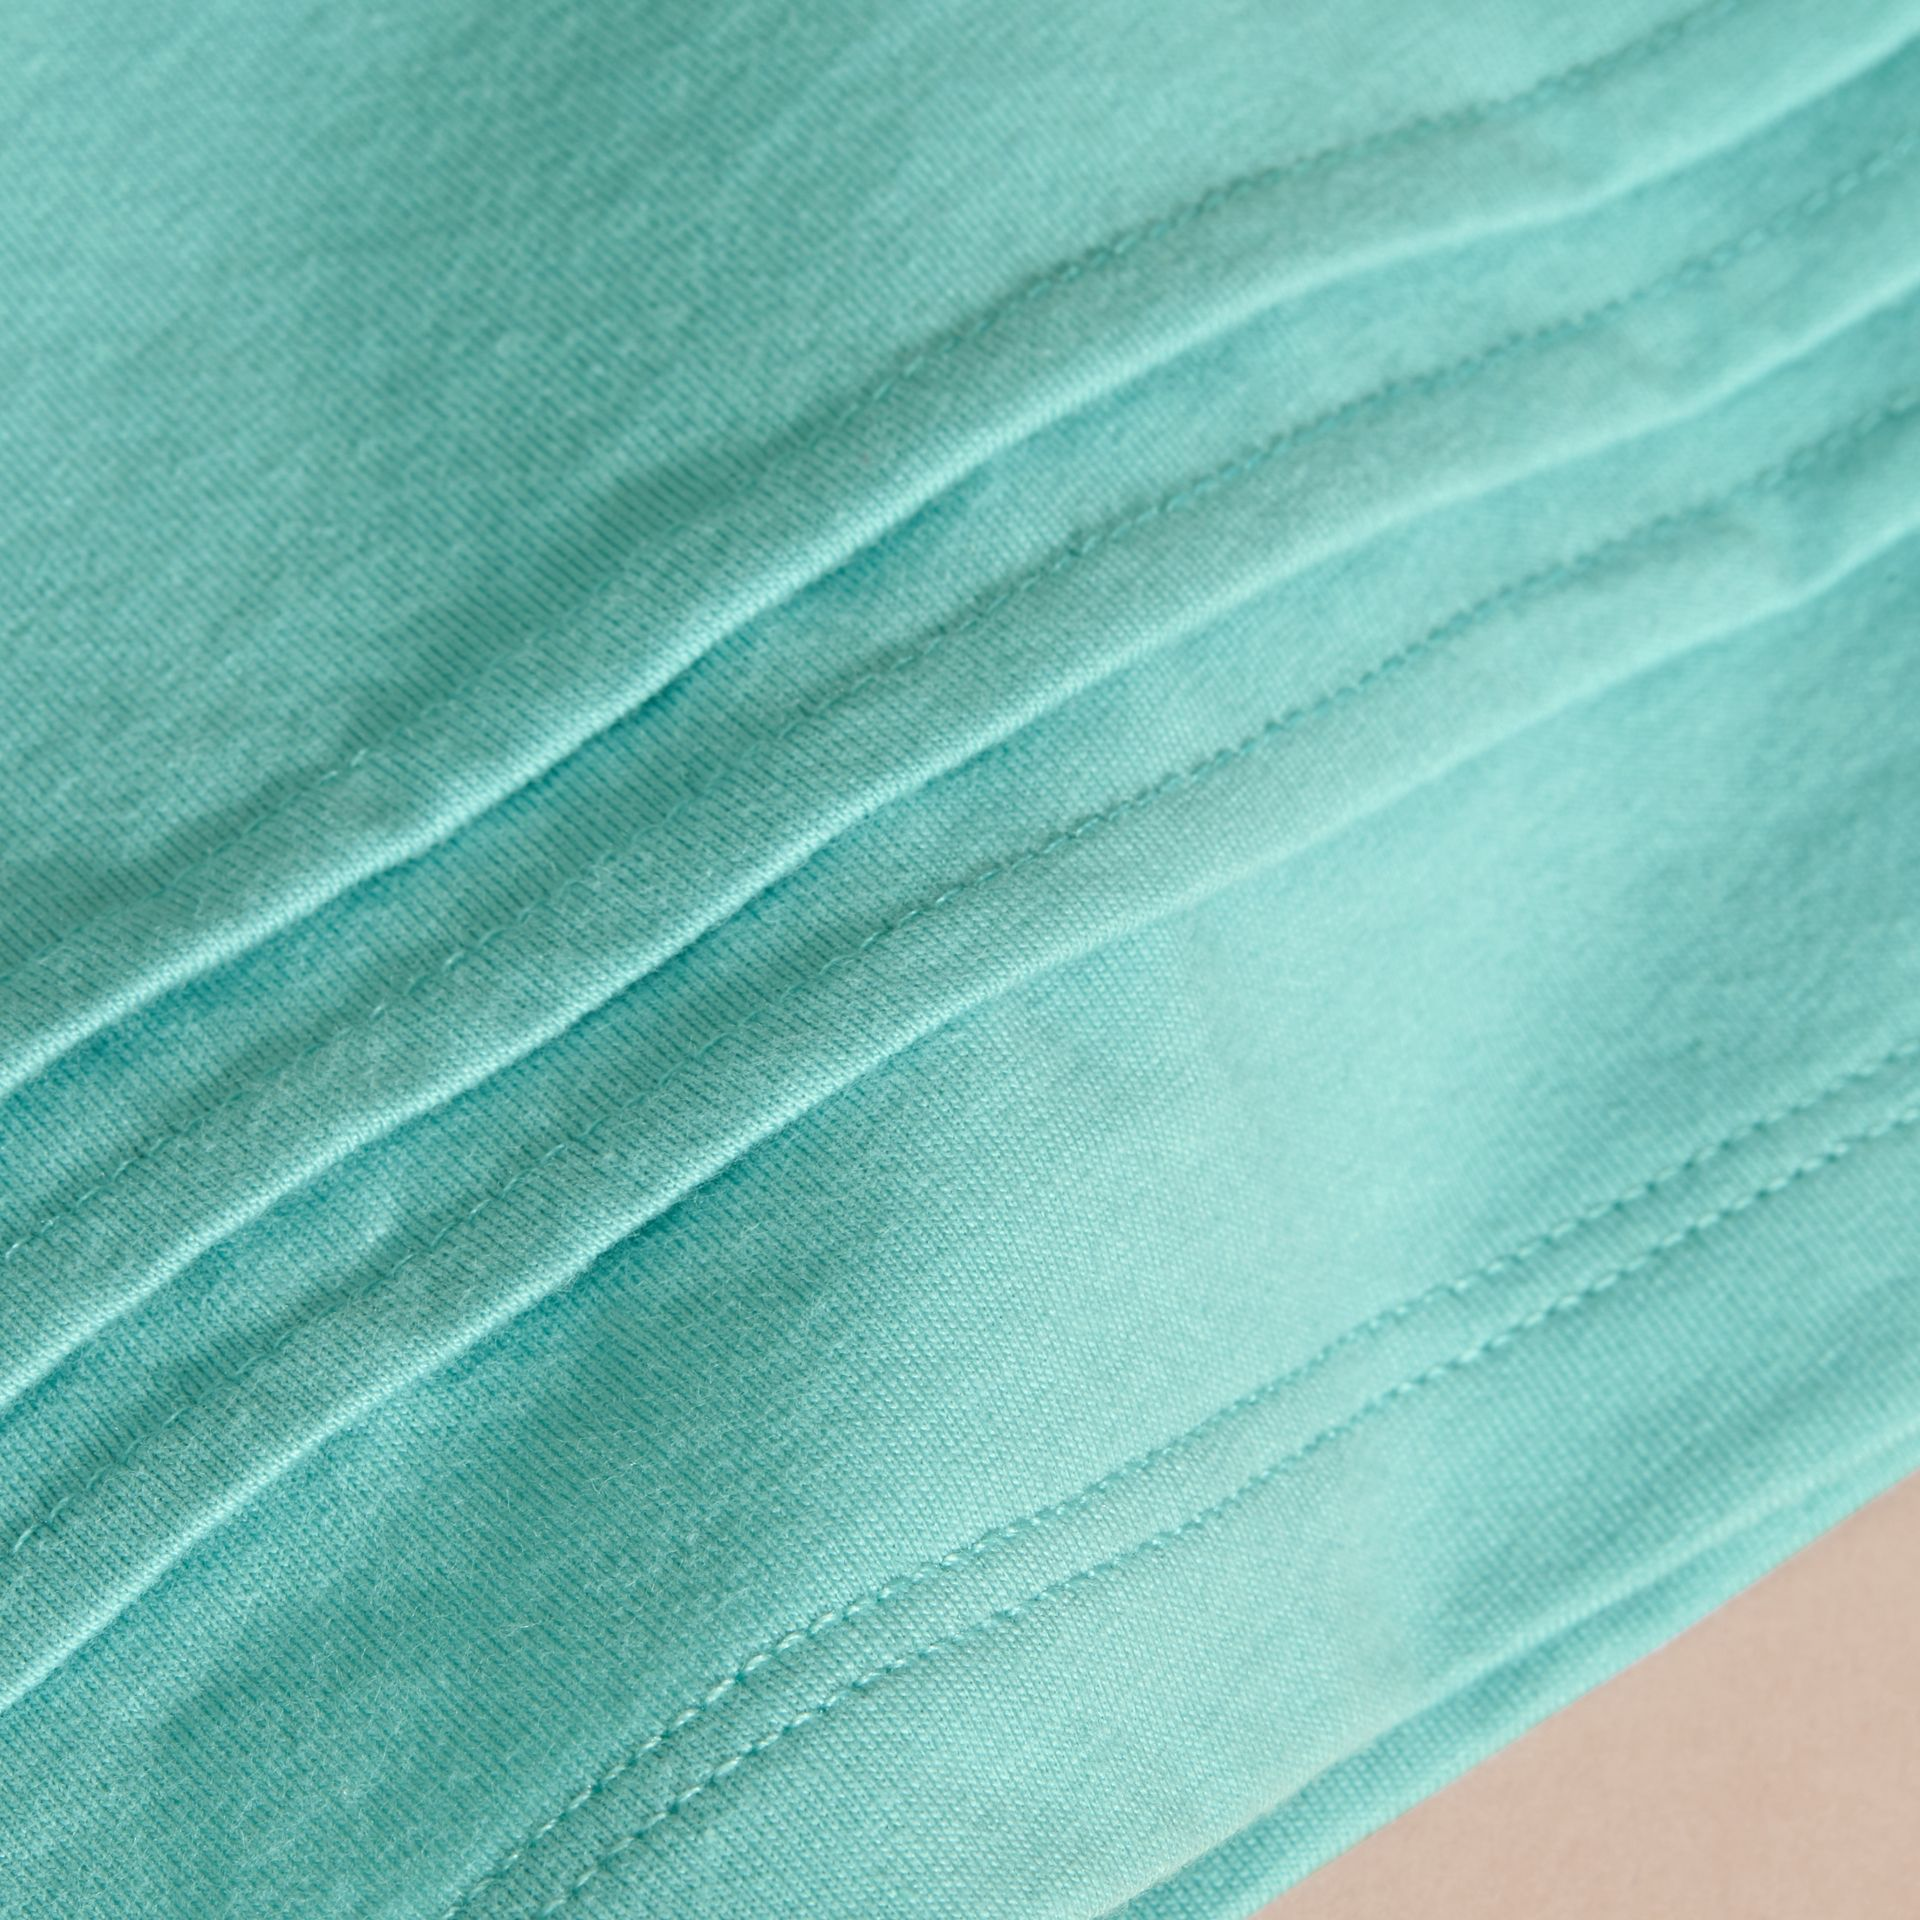 Pleat and Check Detail Cotton T-shirt in Pale Turquoise - gallery image 2